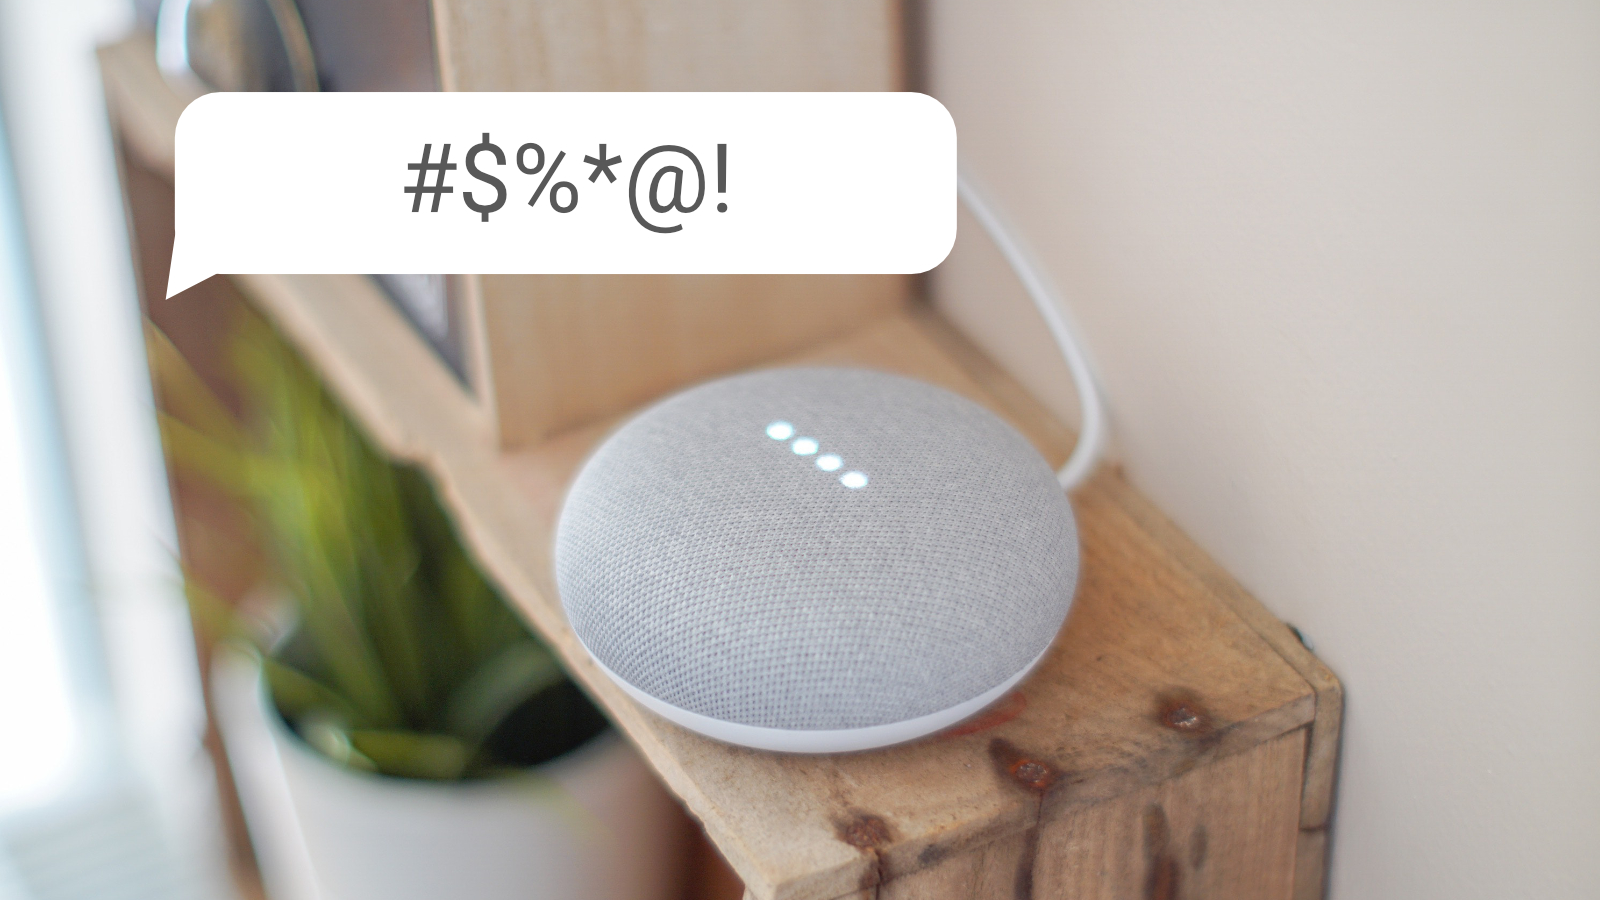 Google Assistant is tired of being cursed out, asks politely to be treated better